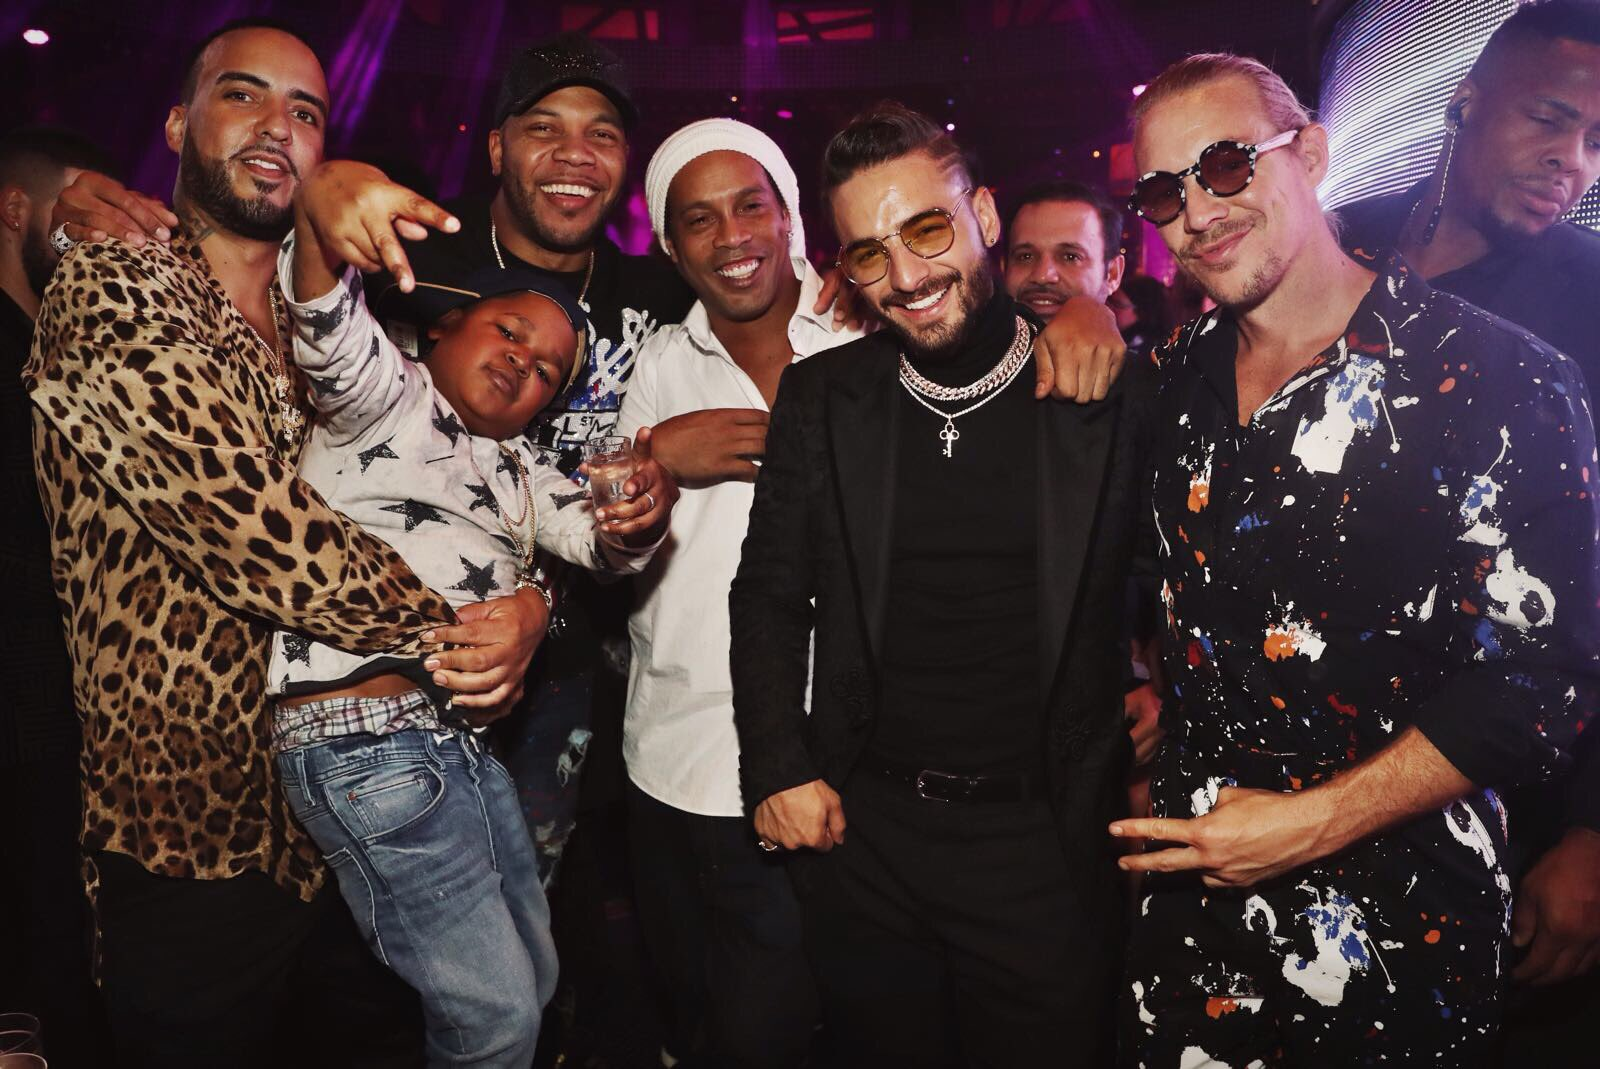 Here a pic of me, maluma, french ronaldinho, flo rida, and dancing baby man for the culture https://t.co/evJ0VST1KU